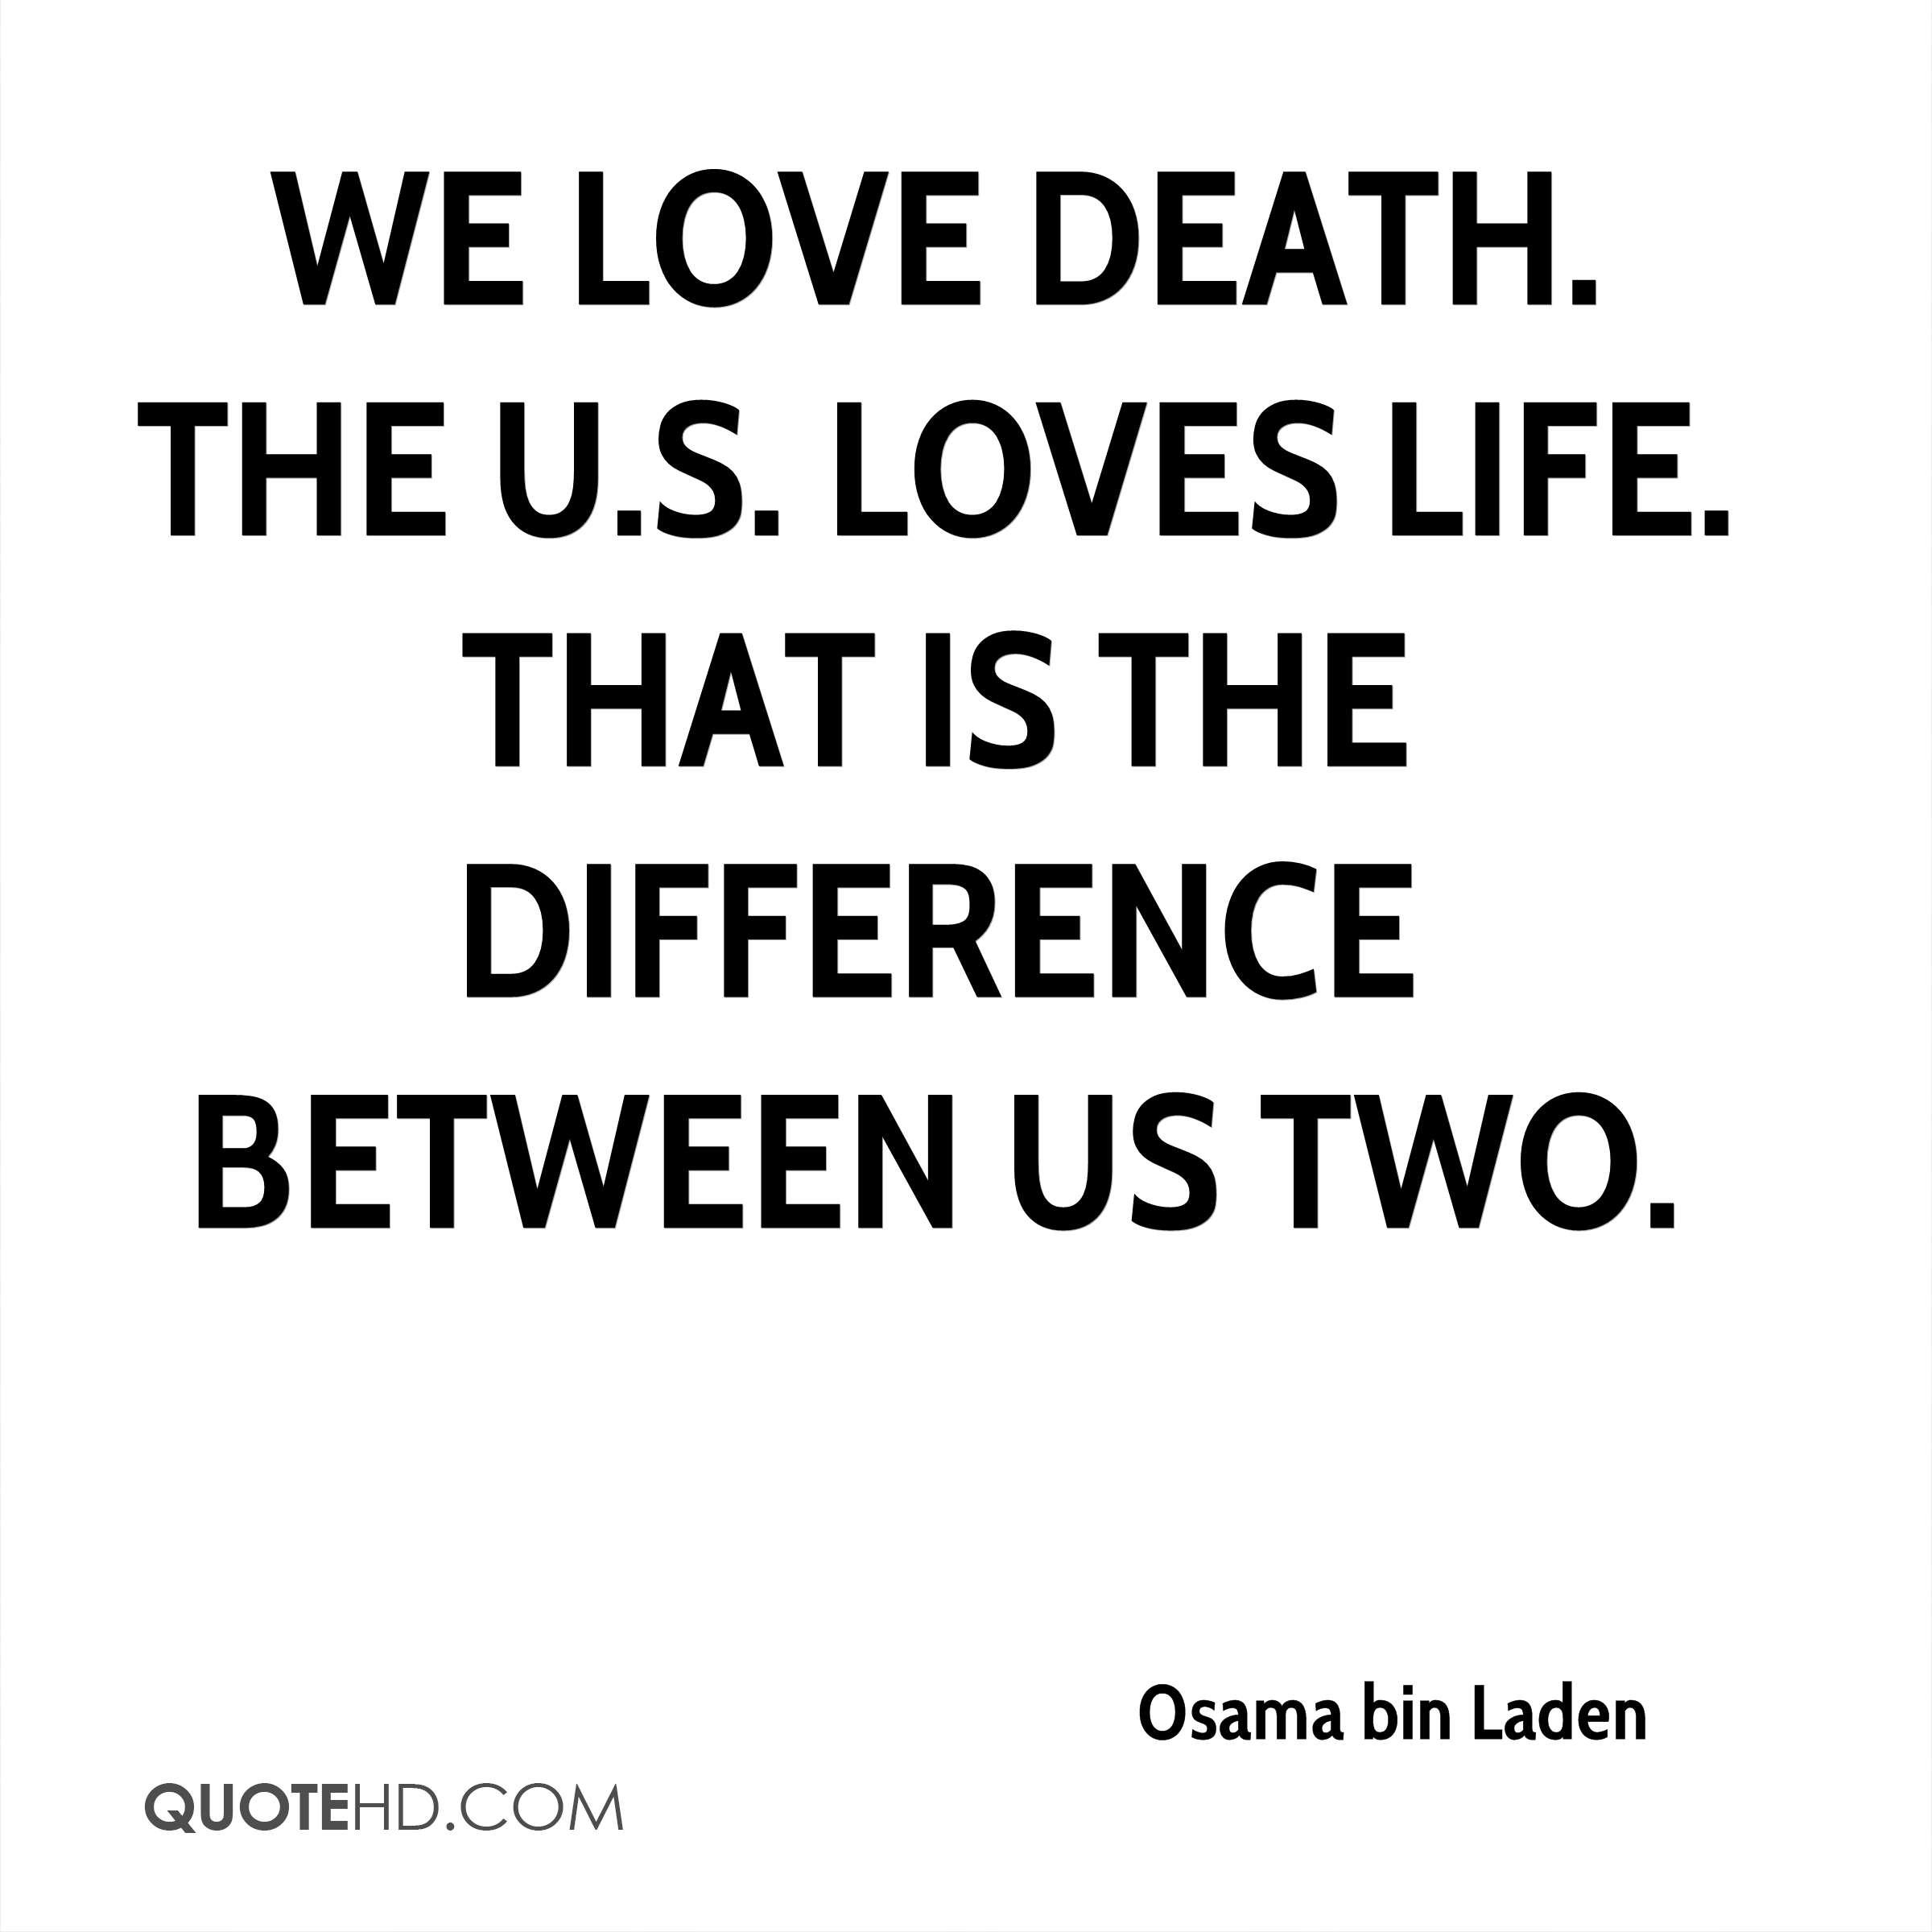 Charmant We Love Death. The U.S. Loves Life. That Is The Difference Between Us Two